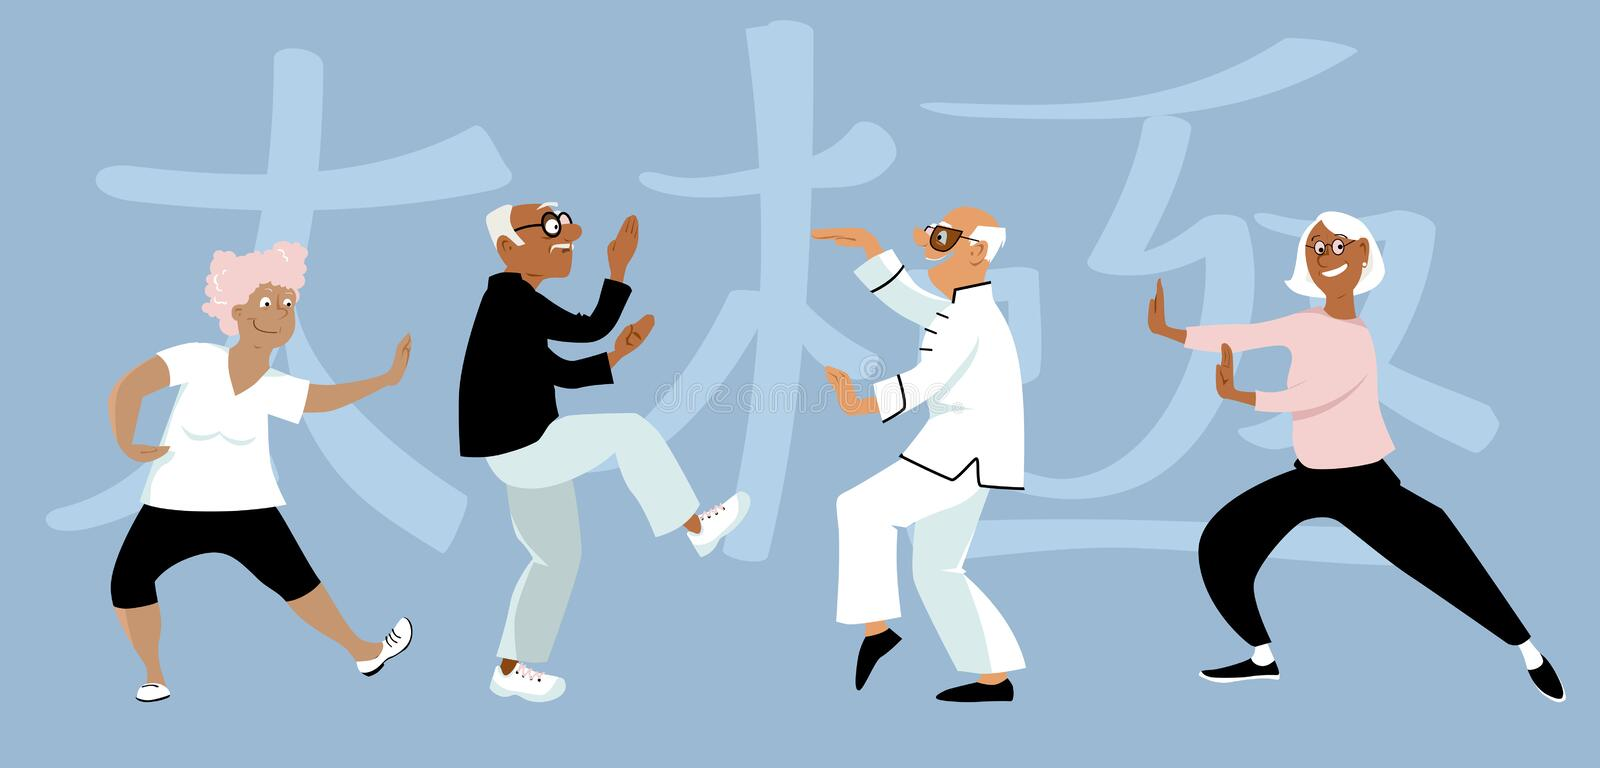 Tai Chi class. Diverse group of senior citizens doing taichi exercise, word tai chi written in Chinese on the background, EPS 8 vector illustration stock illustration